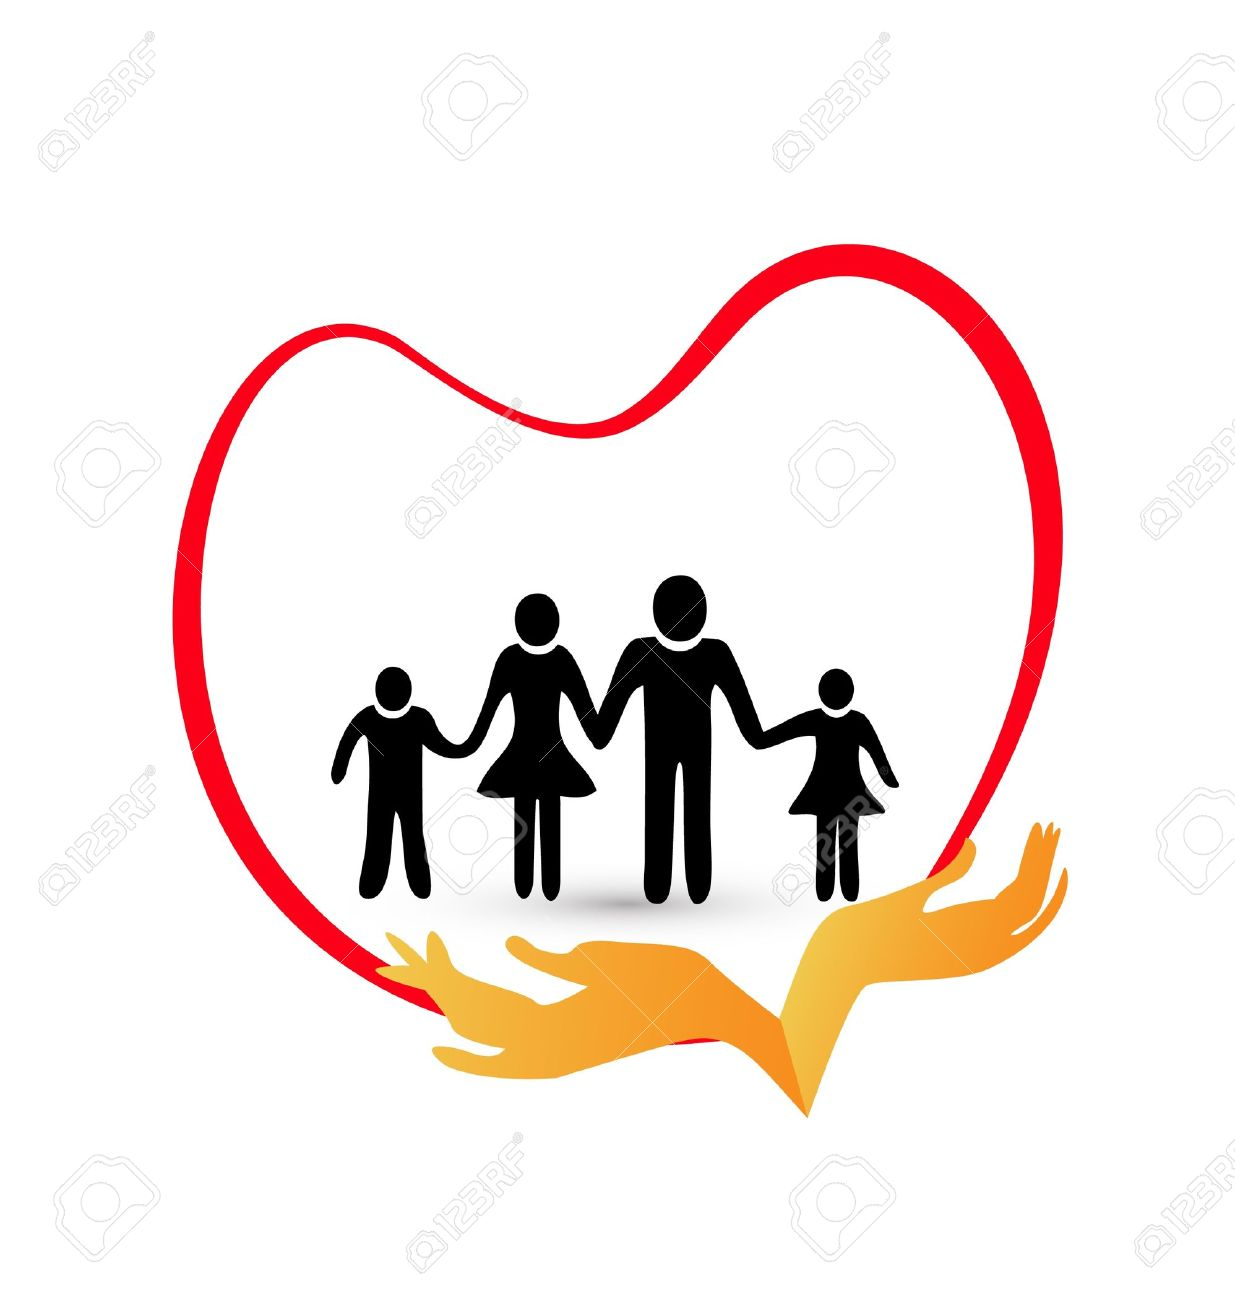 Family protection with love Stock Vector - 21769987